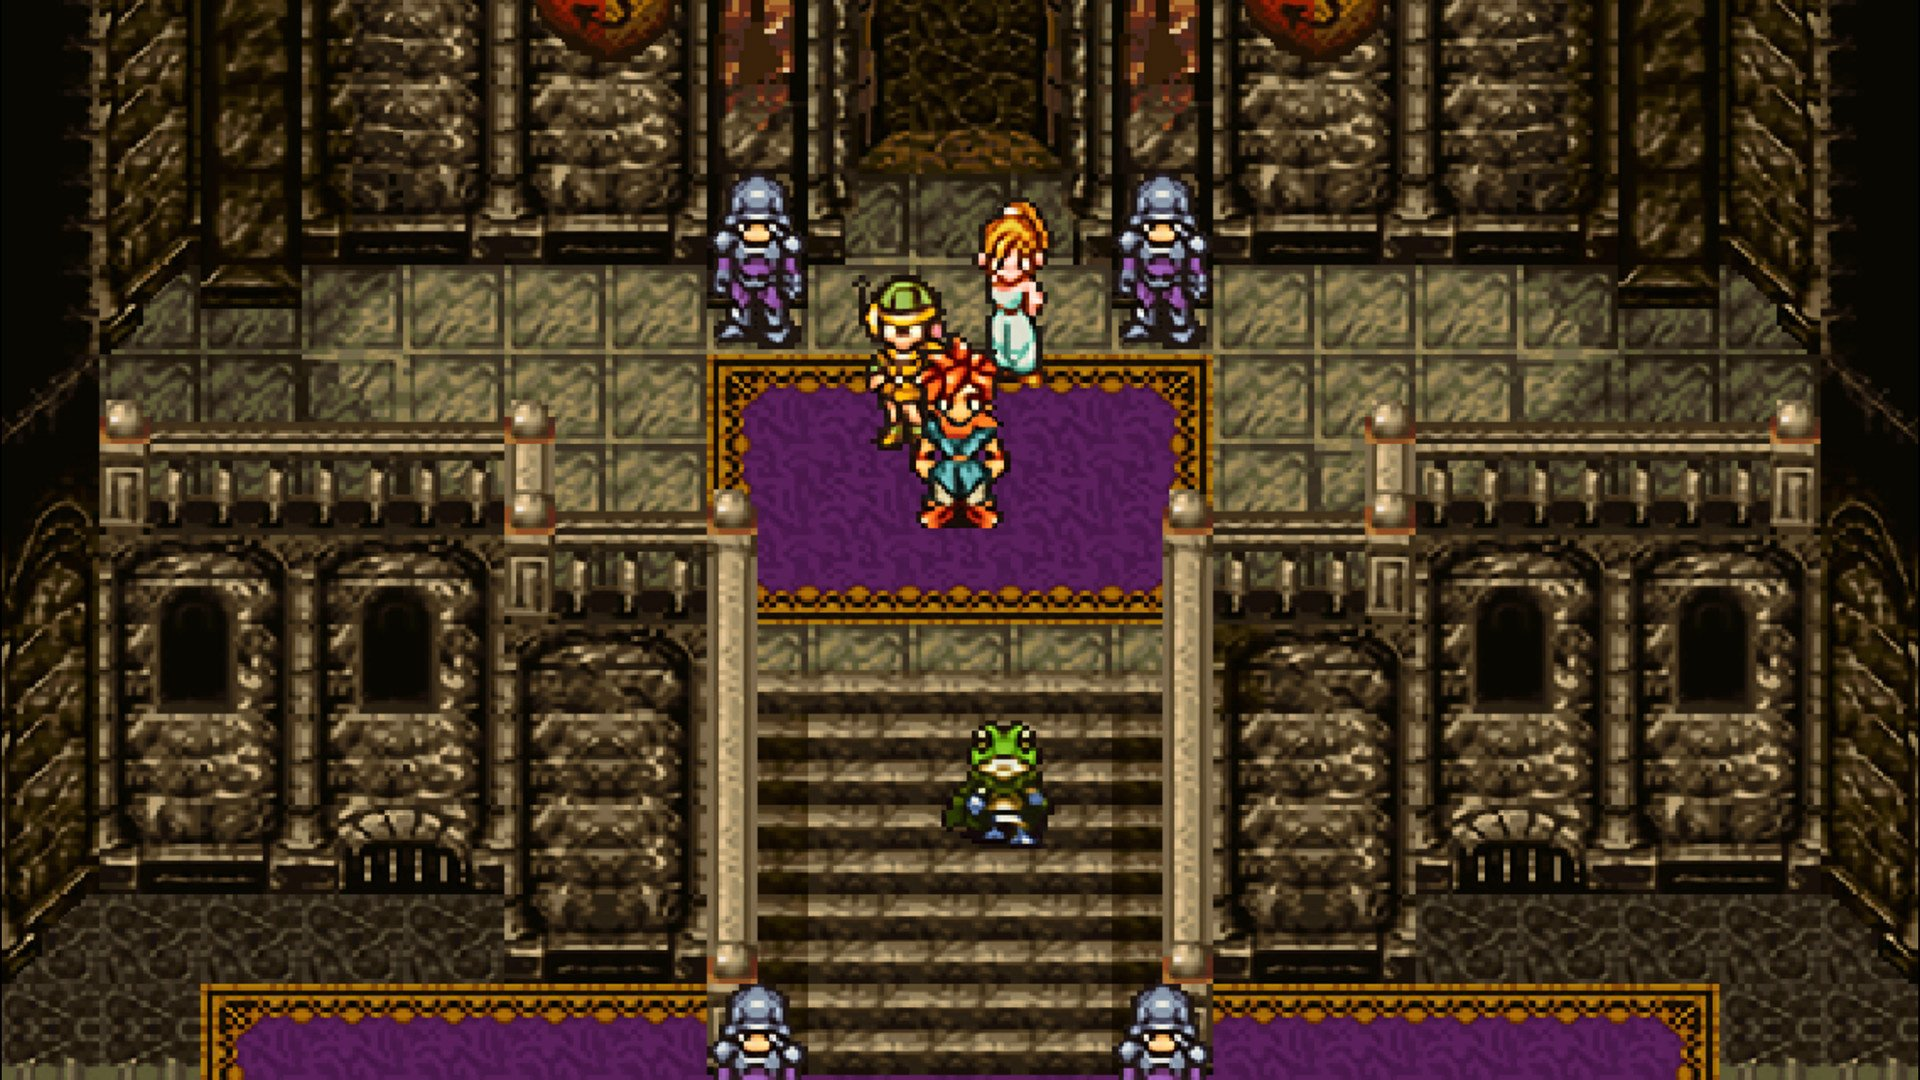 Chrono Trigger has come to Steam, but it looks off screenshot